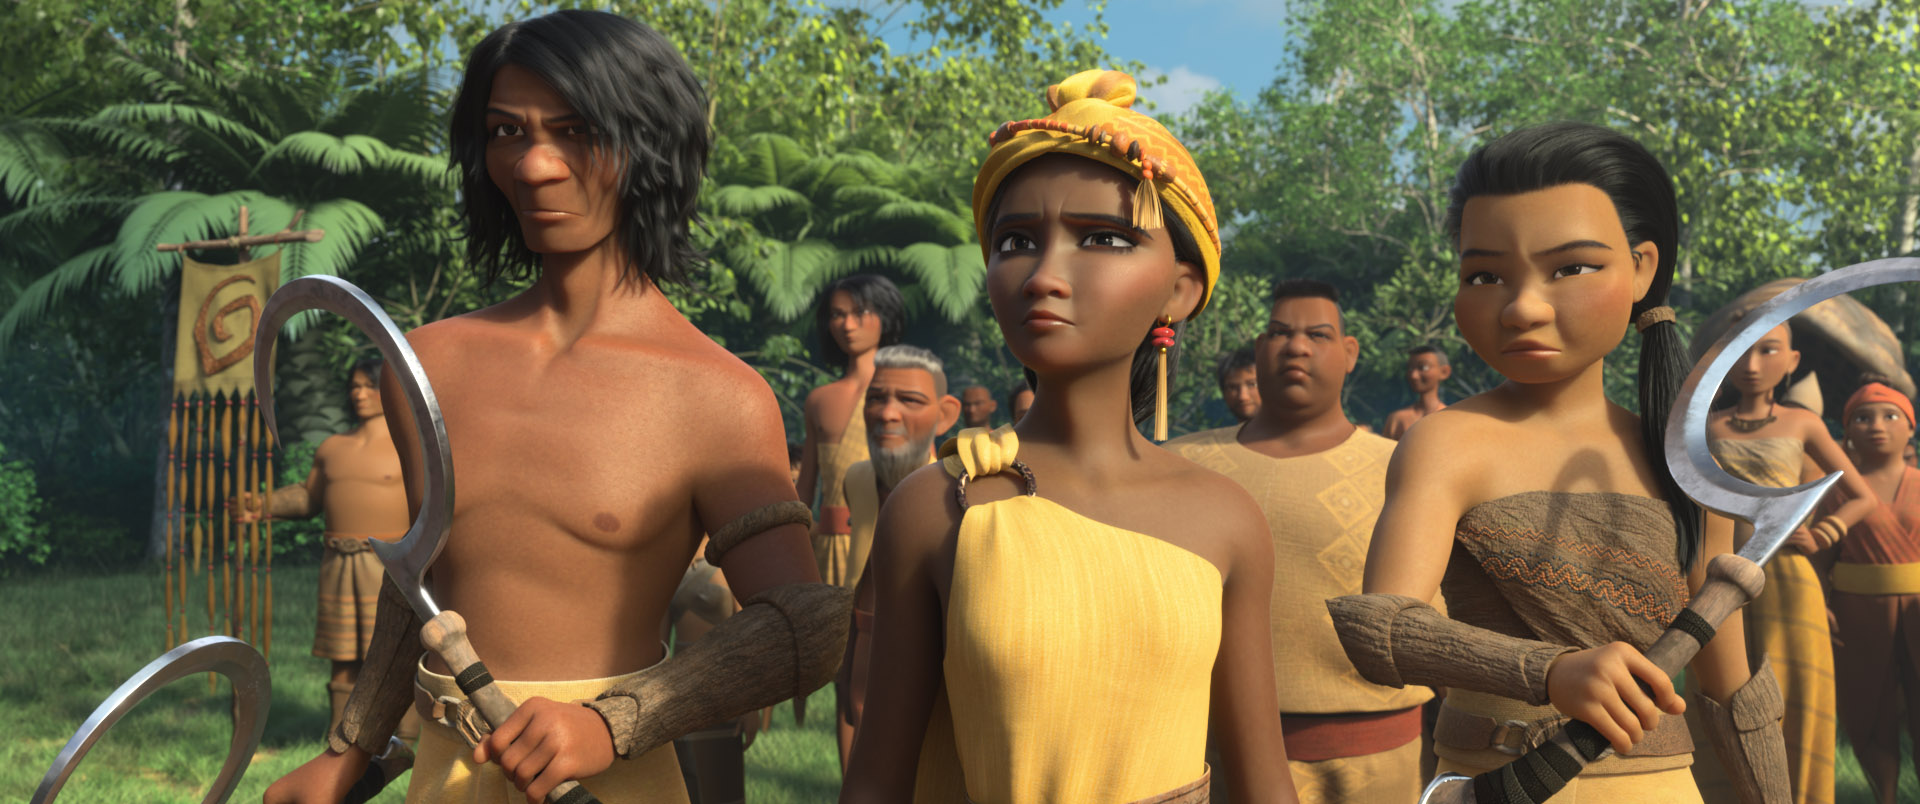 """Resourceful and independent, the people of Tail are accustomed to looking after themselves with little interference from the rest of the five lands of Kumandra. Featuring Patti Harrison as the Tail Chief, Walt Disney Animation Studios' """"Raya and the Last Dragon"""" will be in theaters and on Disney+ with Premier Access on March 5, 2021. © 2021 Disney. All Rights Reserved."""